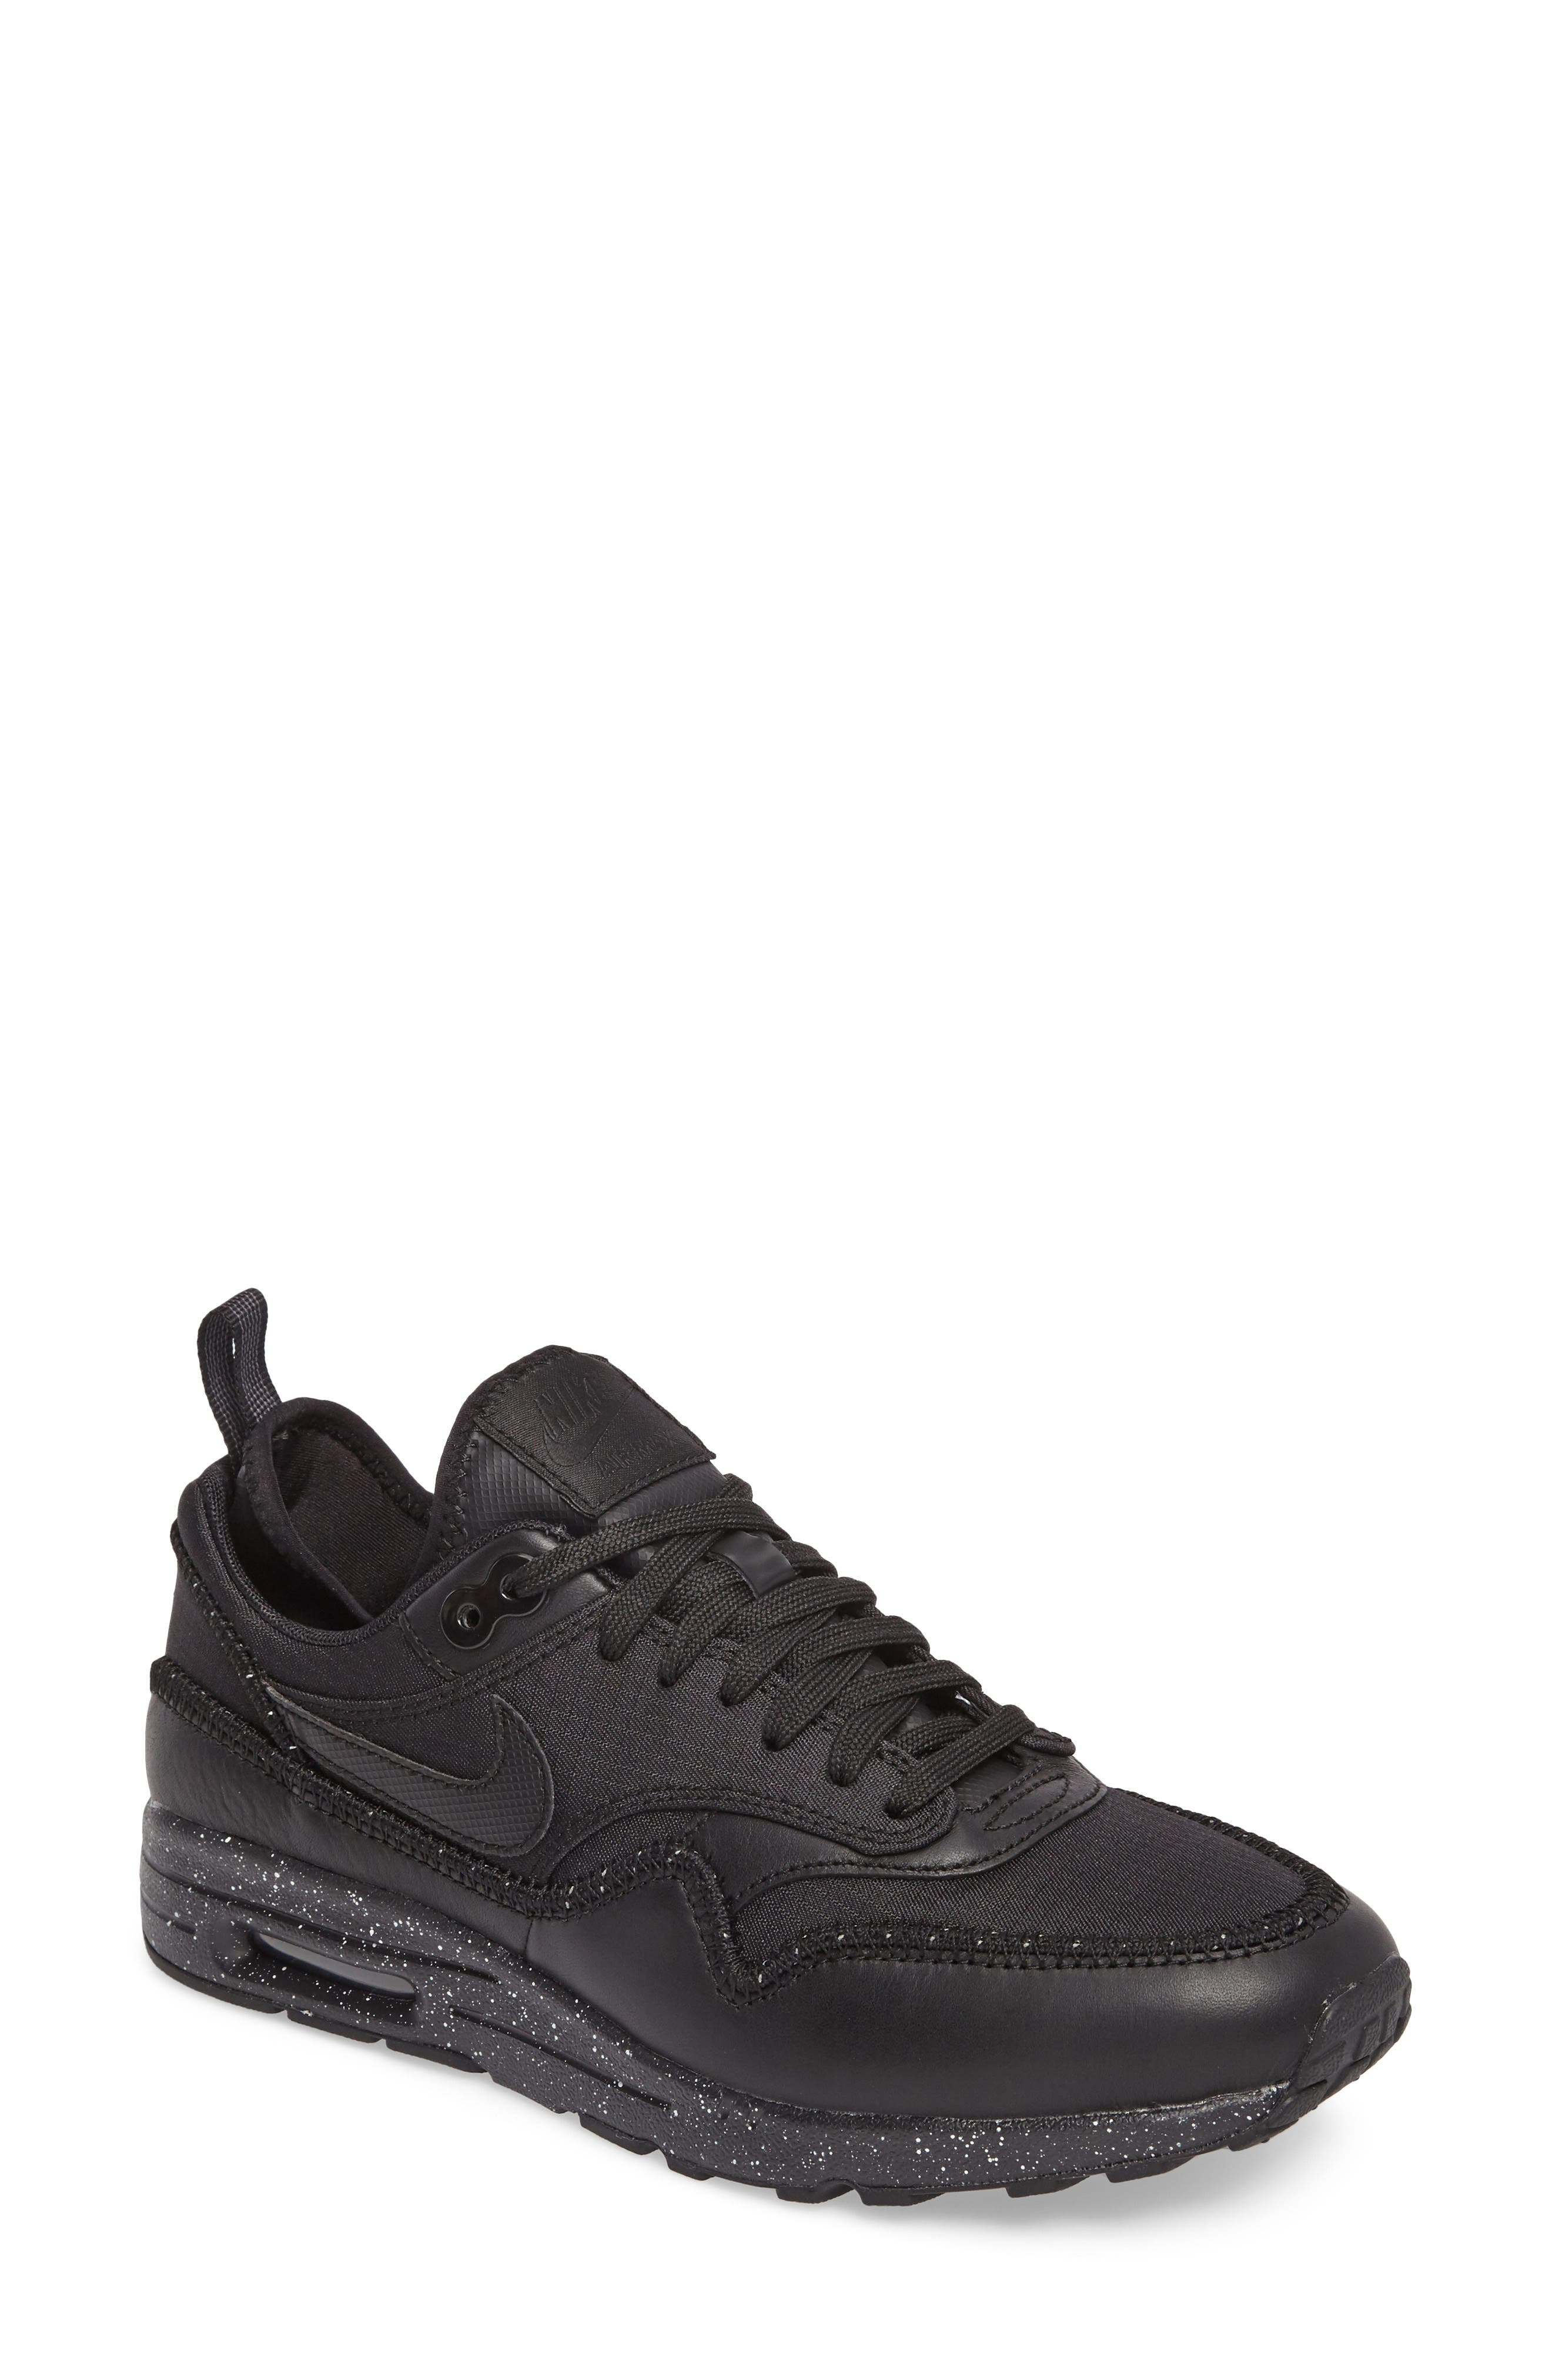 black and white nike air max shoes. nike air max 1 ultra 2.0 si sneaker (women) black and white shoes